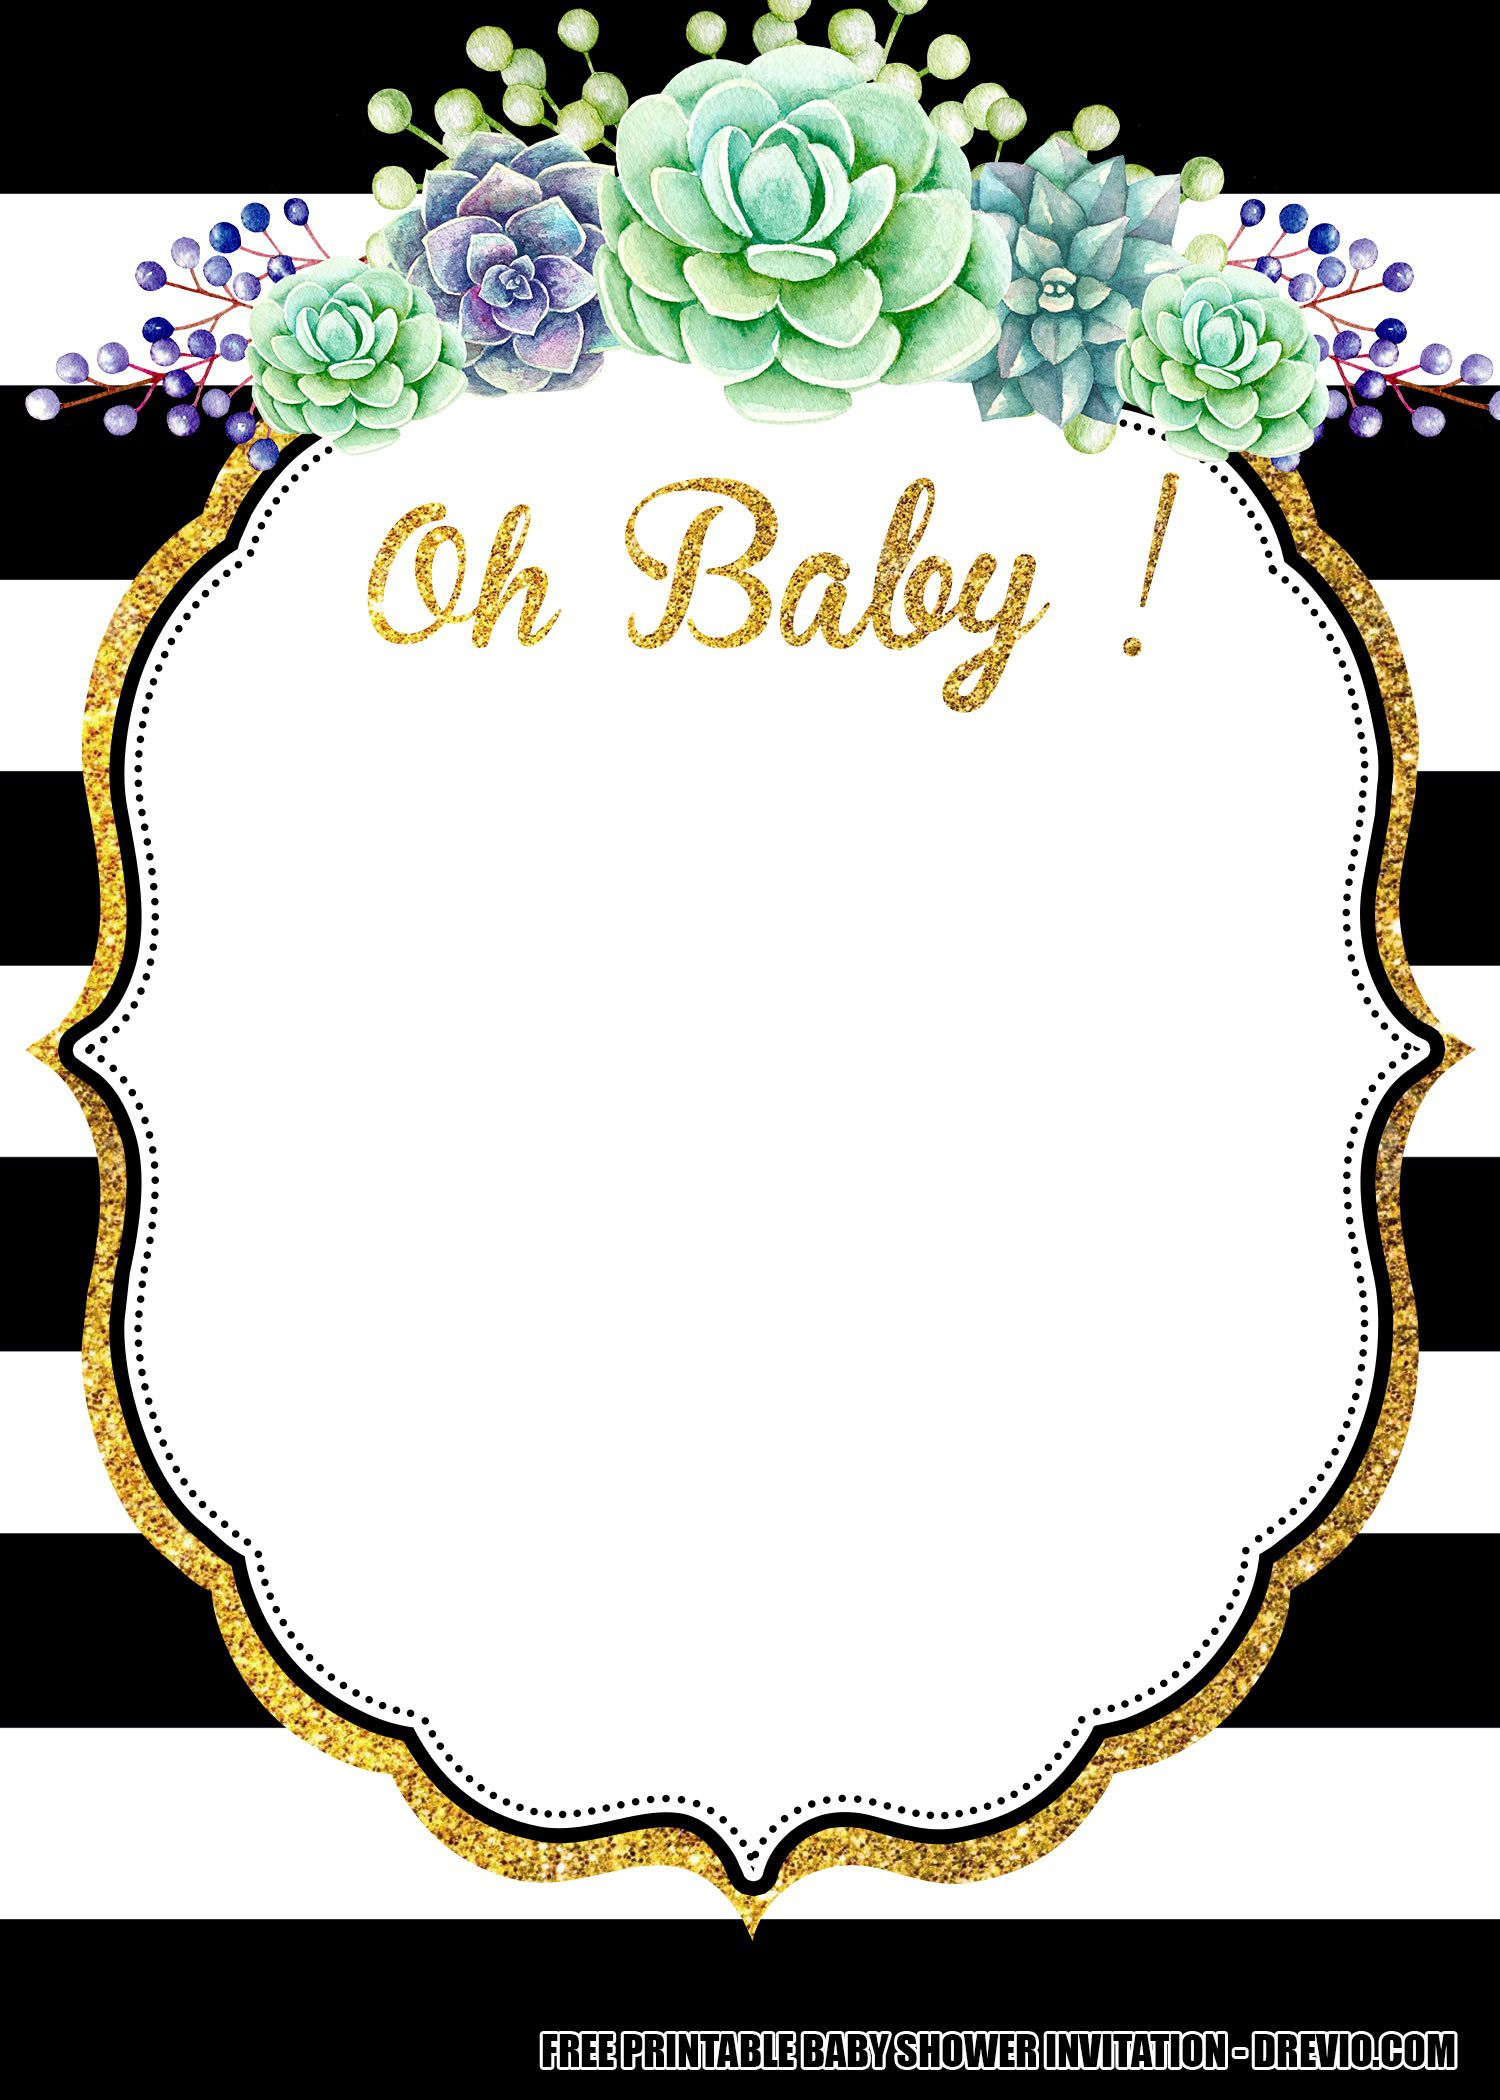 006 Astounding Baby Shower Invitation Free Template Highest Clarity  Templates Online Printable E-invitation Card Design DownloadFull